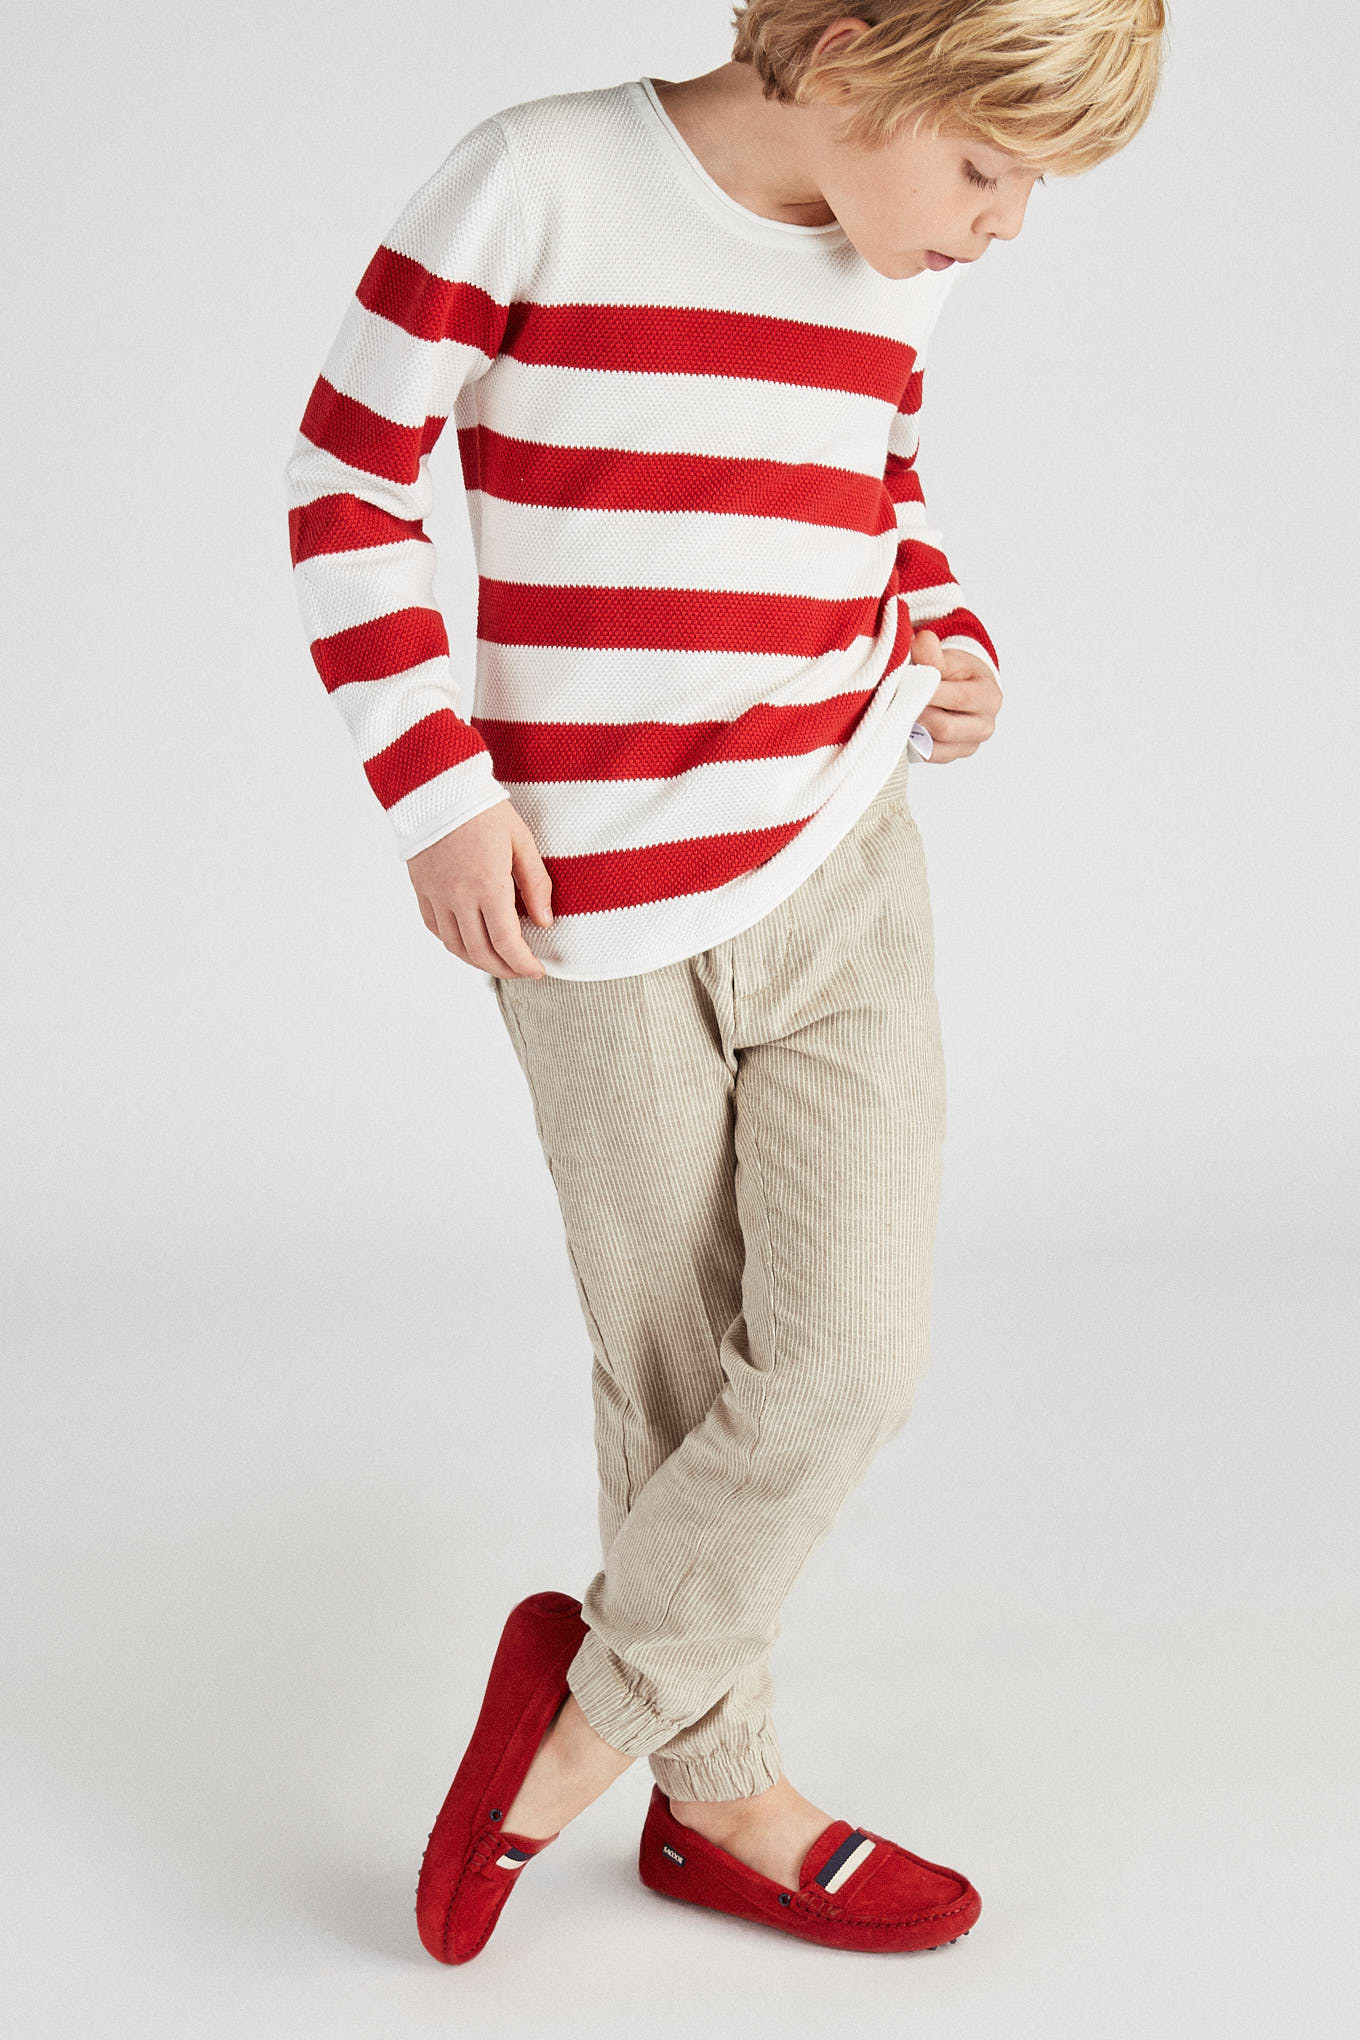 Sweater Red Casual Boy